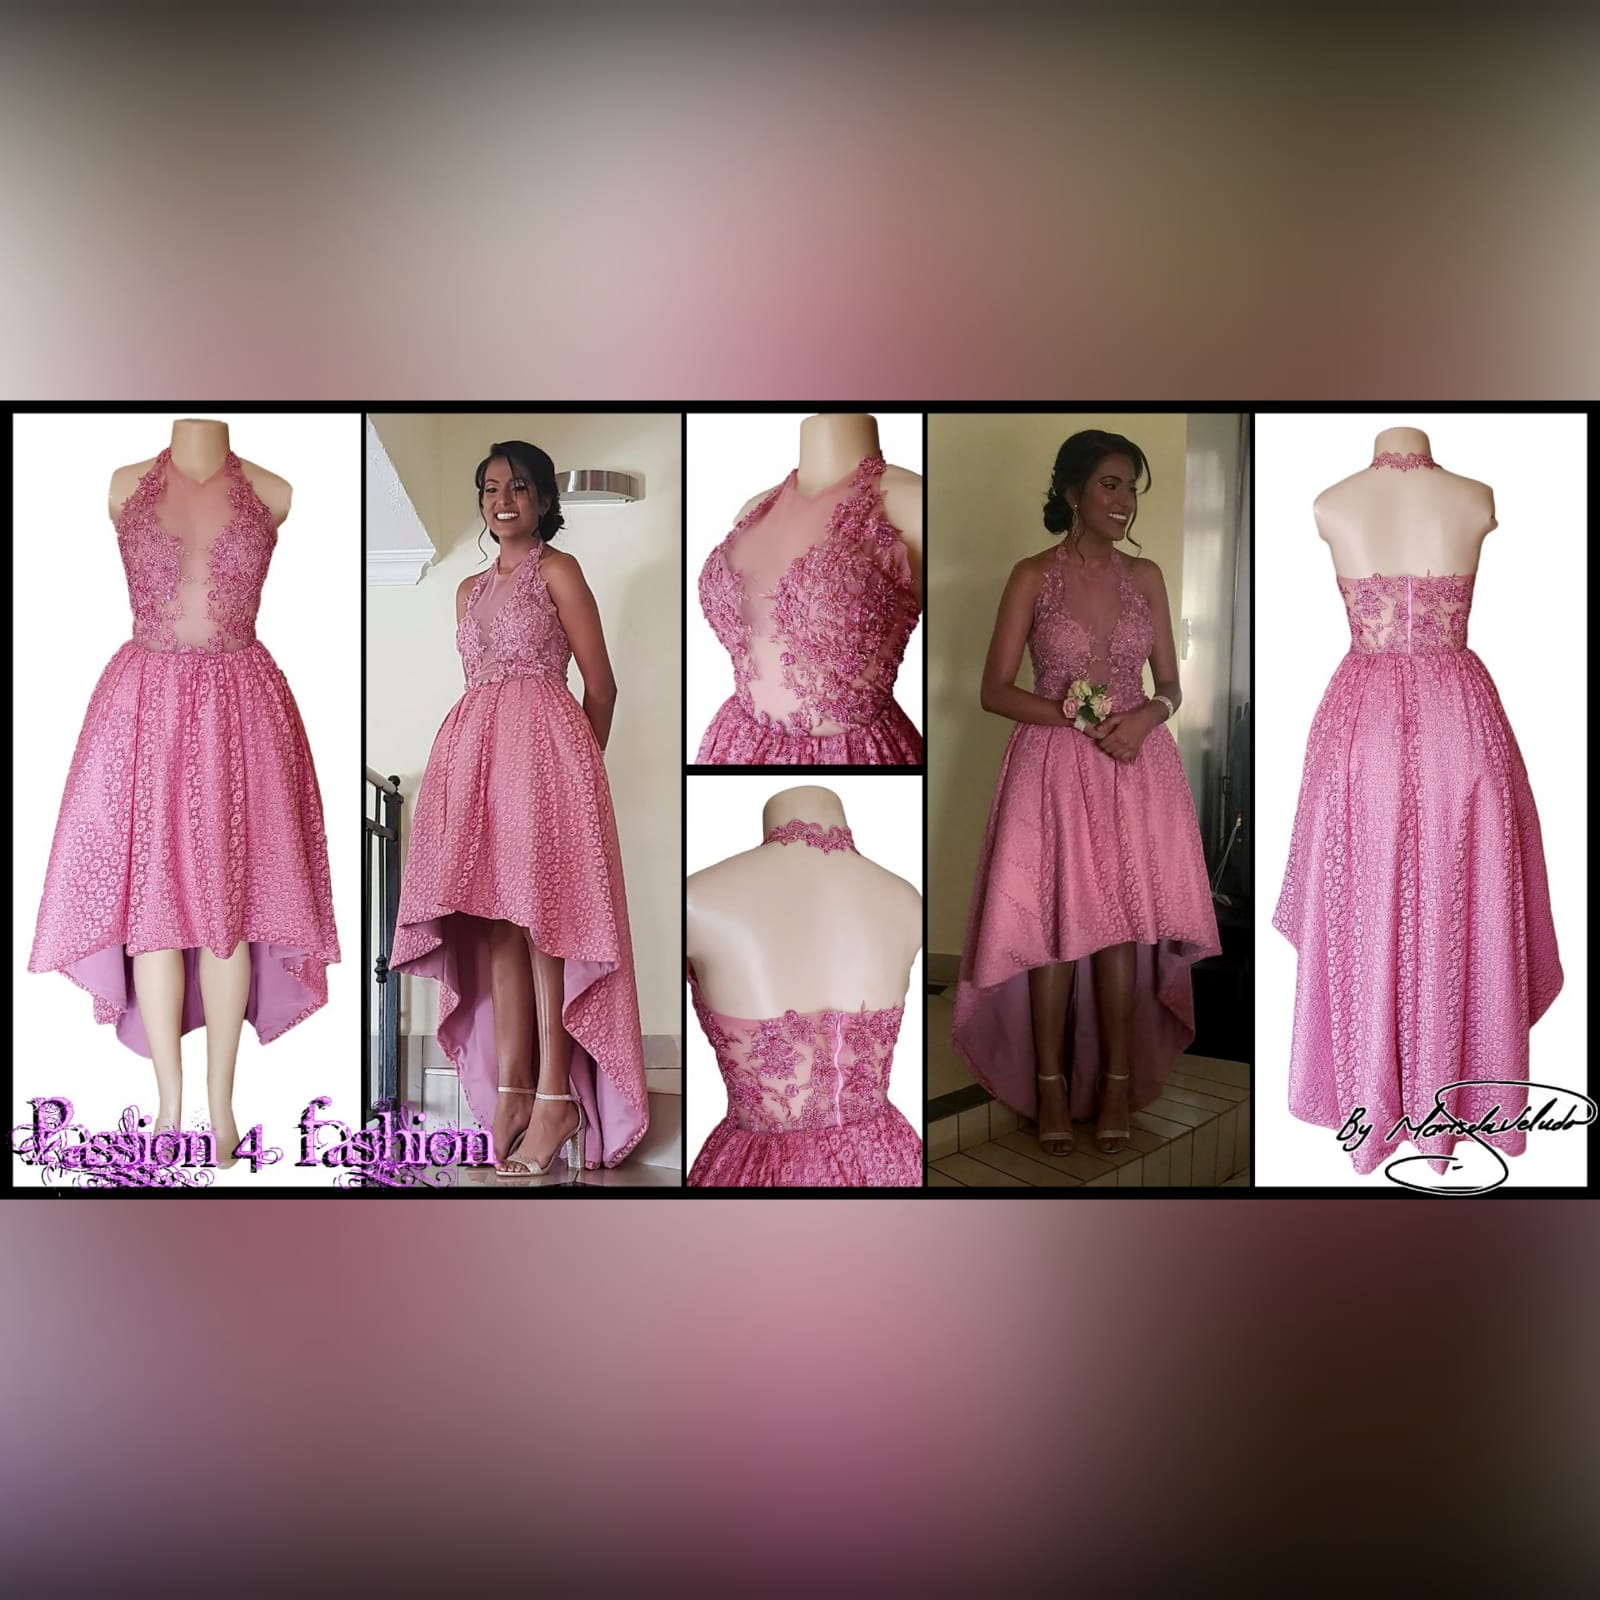 High low dusty pink prom dress 7 high low dusty pink prom dress with an illusion bodice detailed with beaded lace. Bottom fully laced.